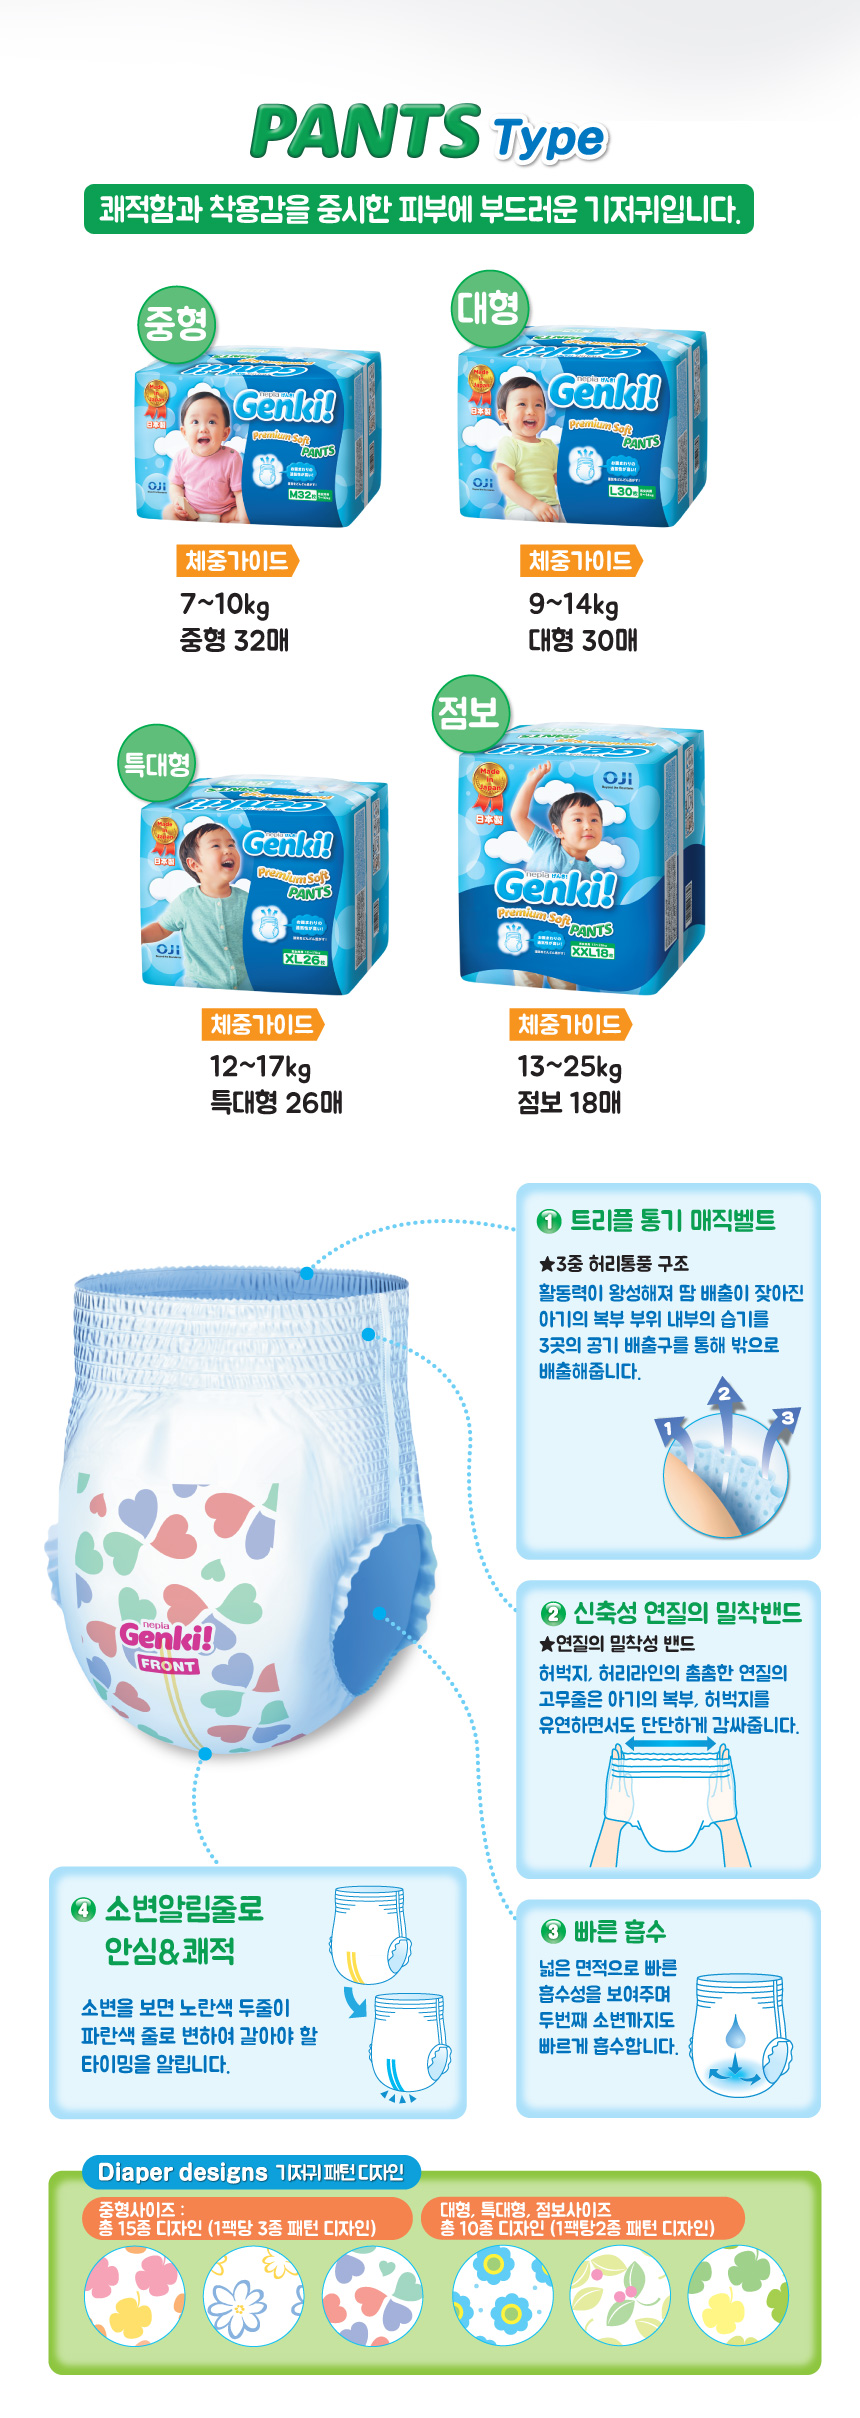 Kenki Premium Soft Diaper 1pack 11street Nepia Genki New Baby Diapers Tape S 72 Seller Information